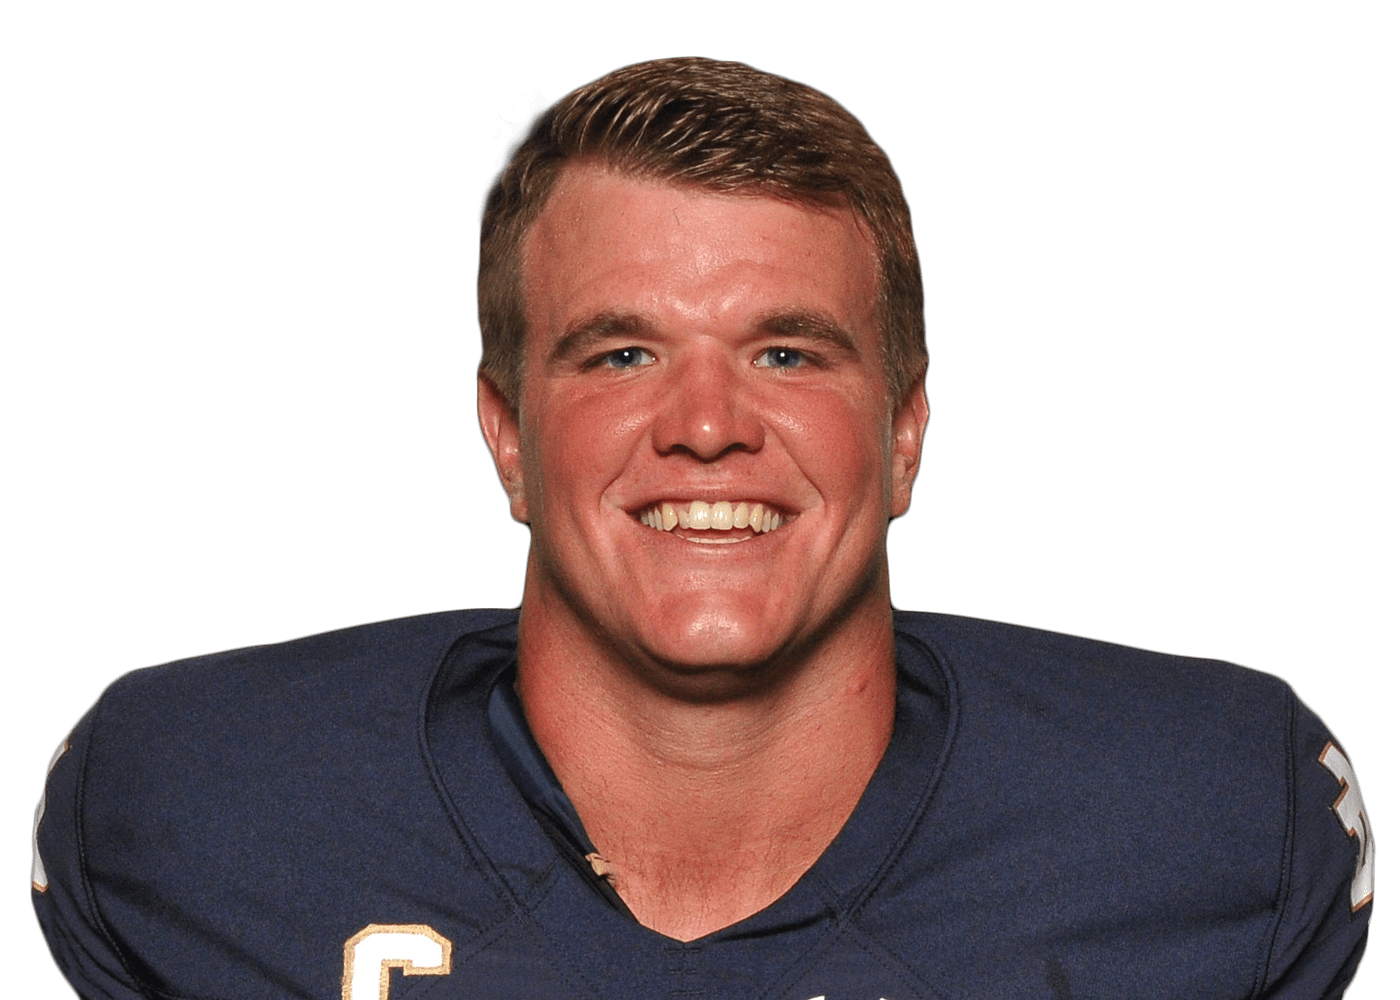 Nfl Draft Amp Combine Profile Mike Mcglinchey Nfl Com